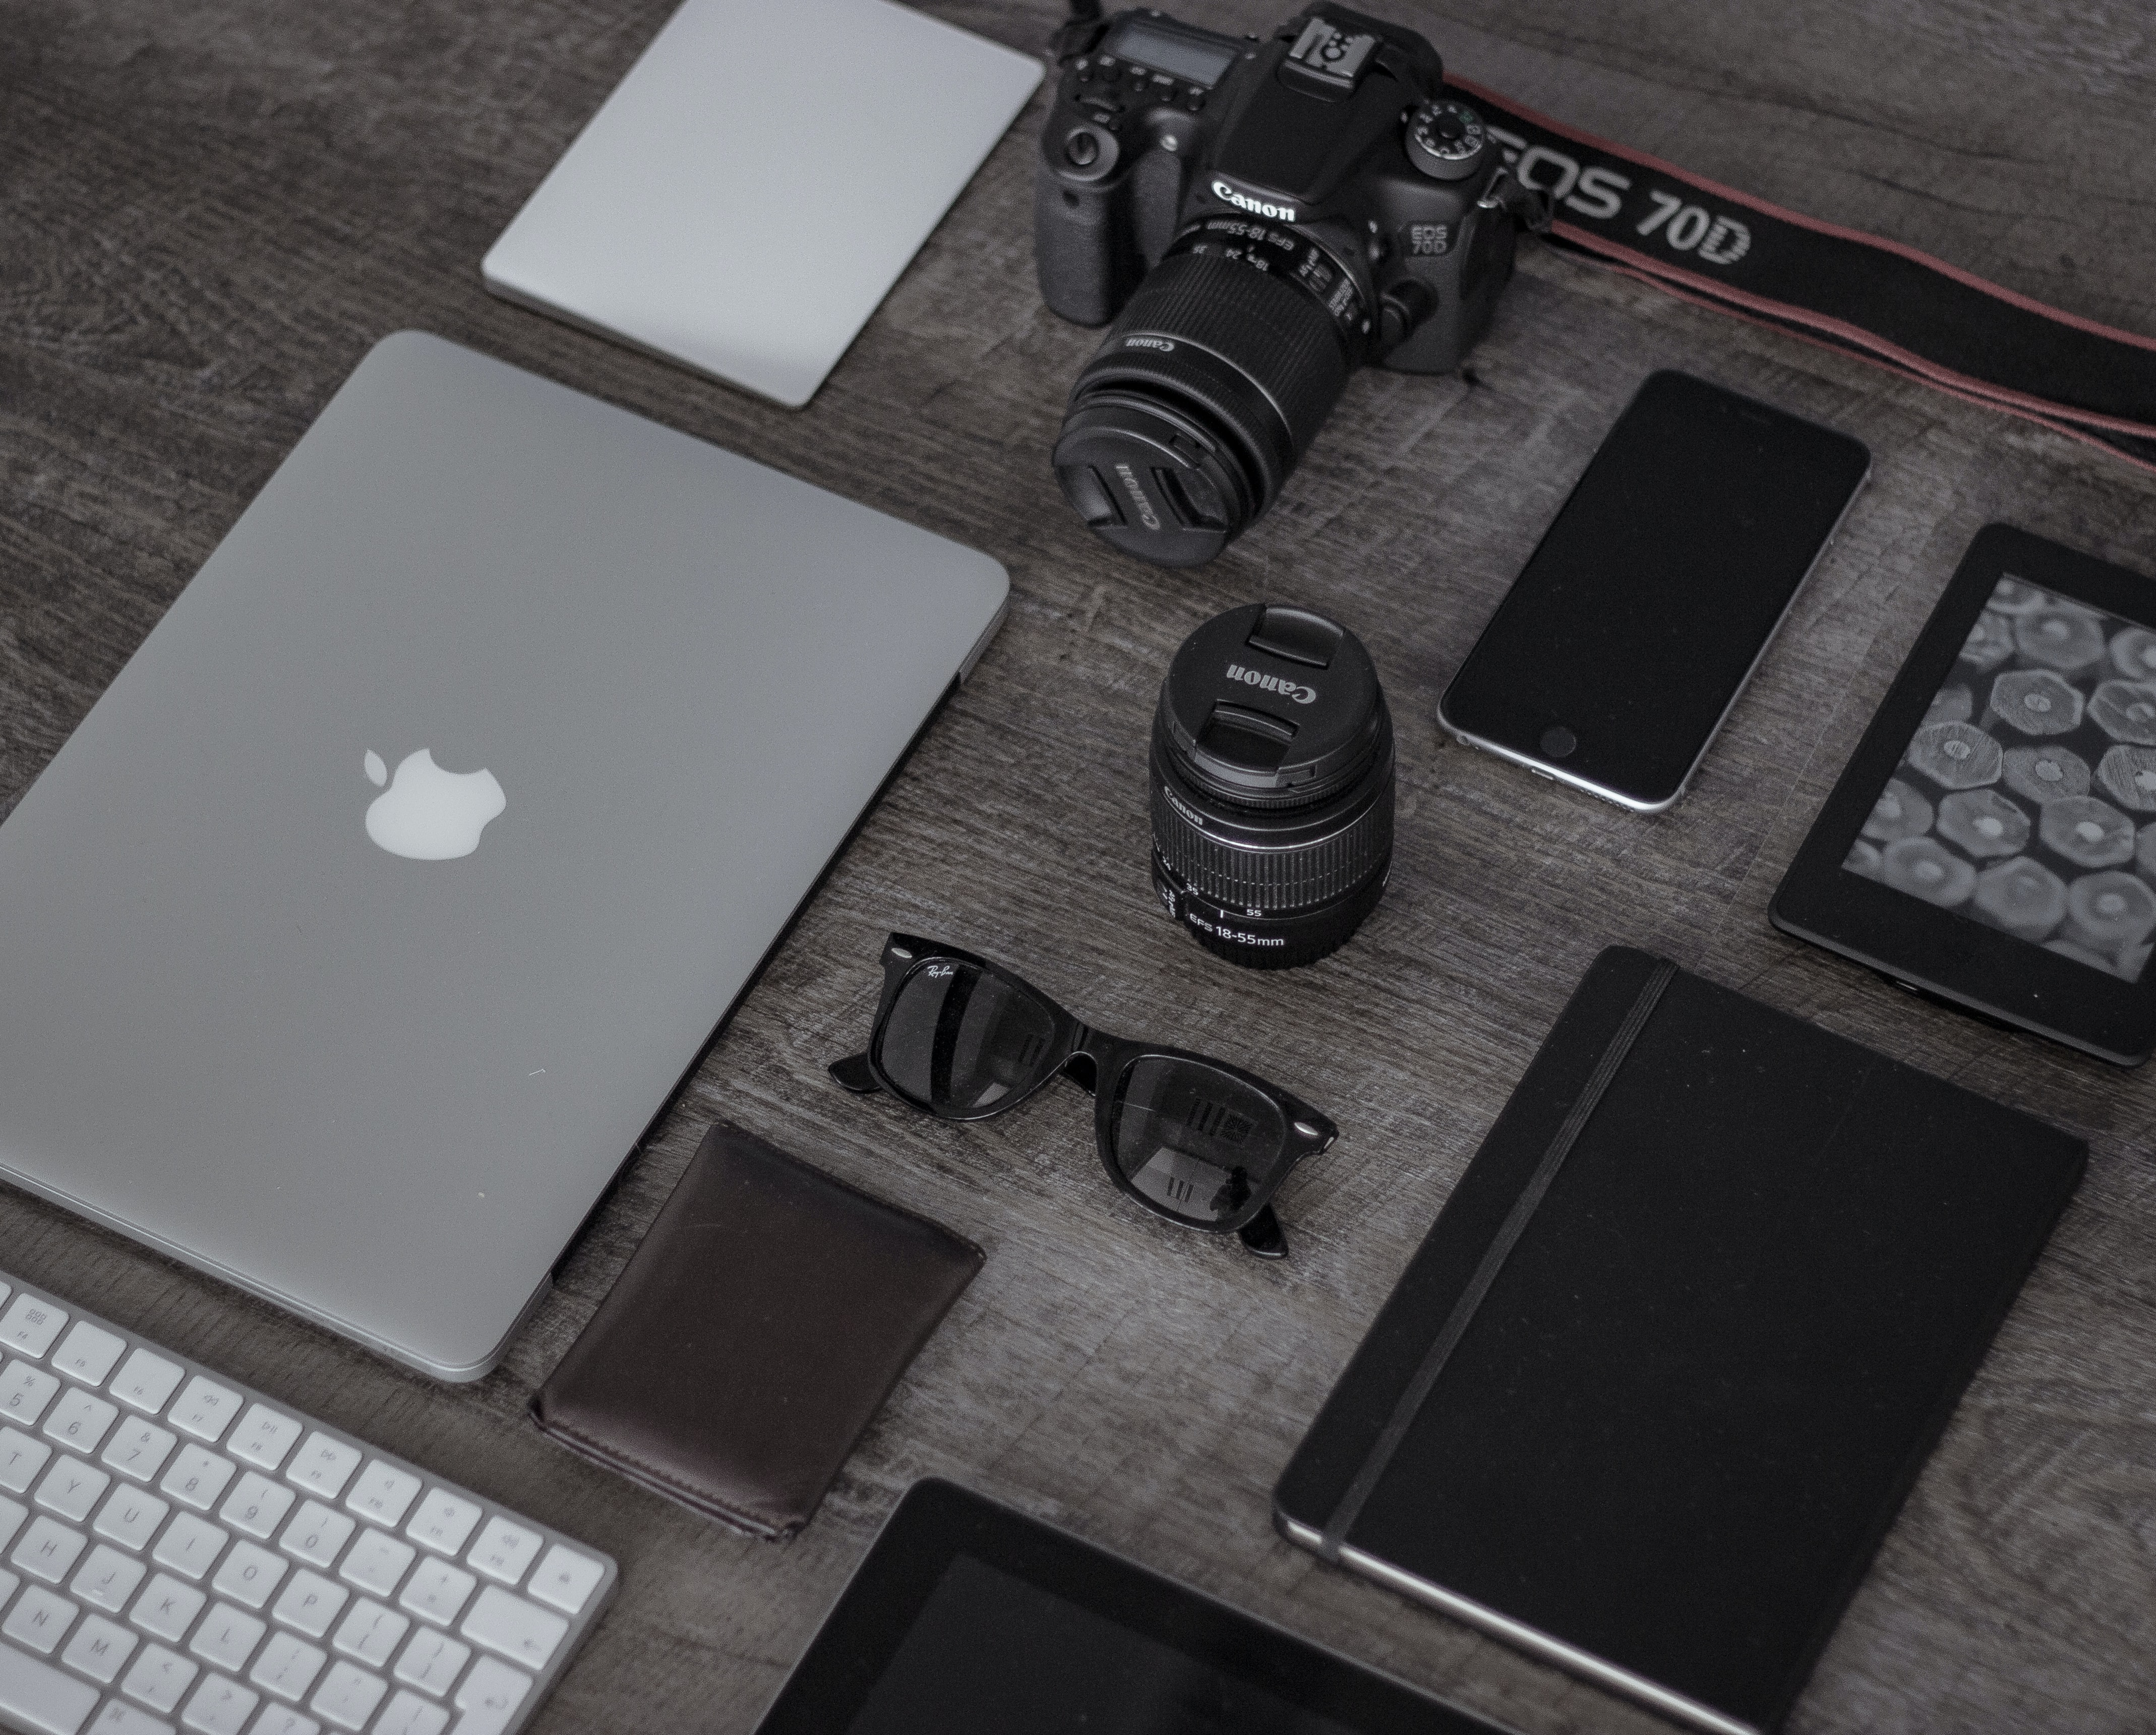 A flatlay with a long-lens camera, a MacBook, an iPhone, a Kindle and a notebook